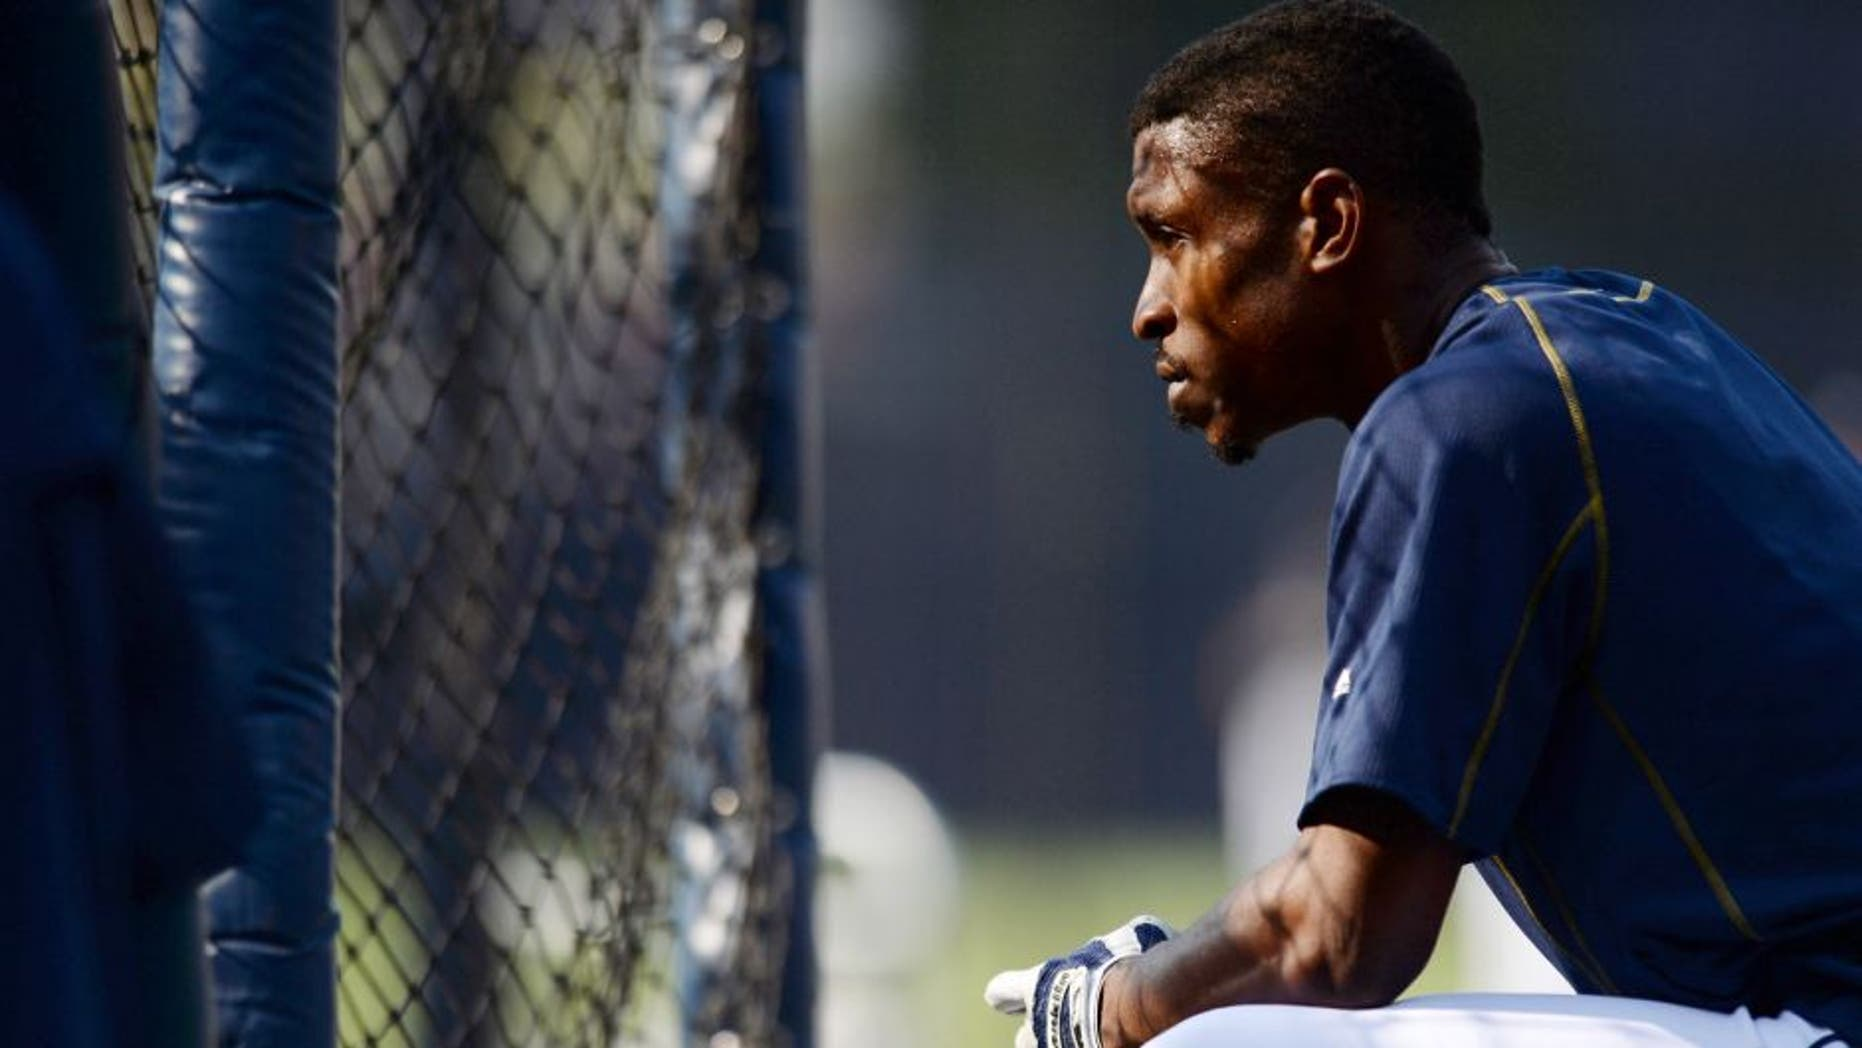 Aug 21, 2015; San Diego, CA, USA; San Diego Padres center fielder Melvin Upton Jr. (2) looks on during batting practice prior to the game against the St. Louis Cardinals at Petco Park. Mandatory Credit: Jake Roth-USA TODAY Sports